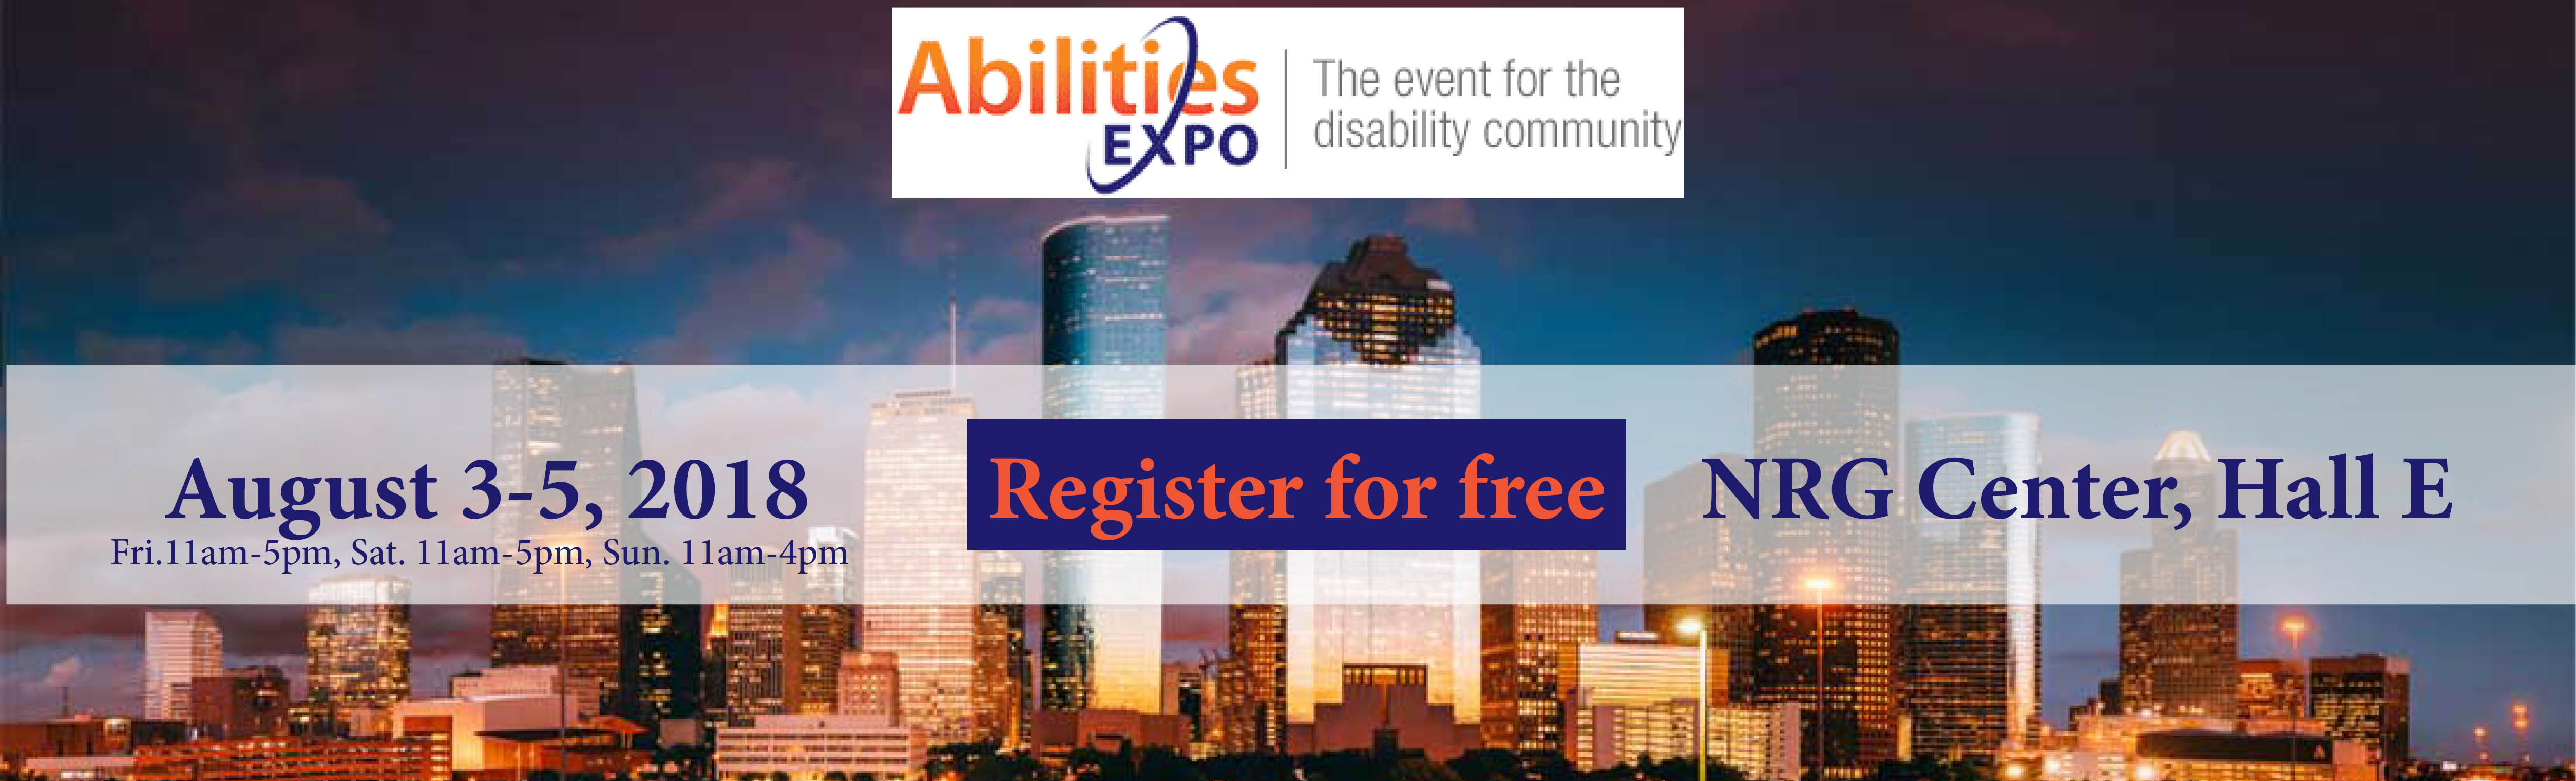 Discover new technologies, possibilities, solutions, and opportunities to change your life! Register for free today!